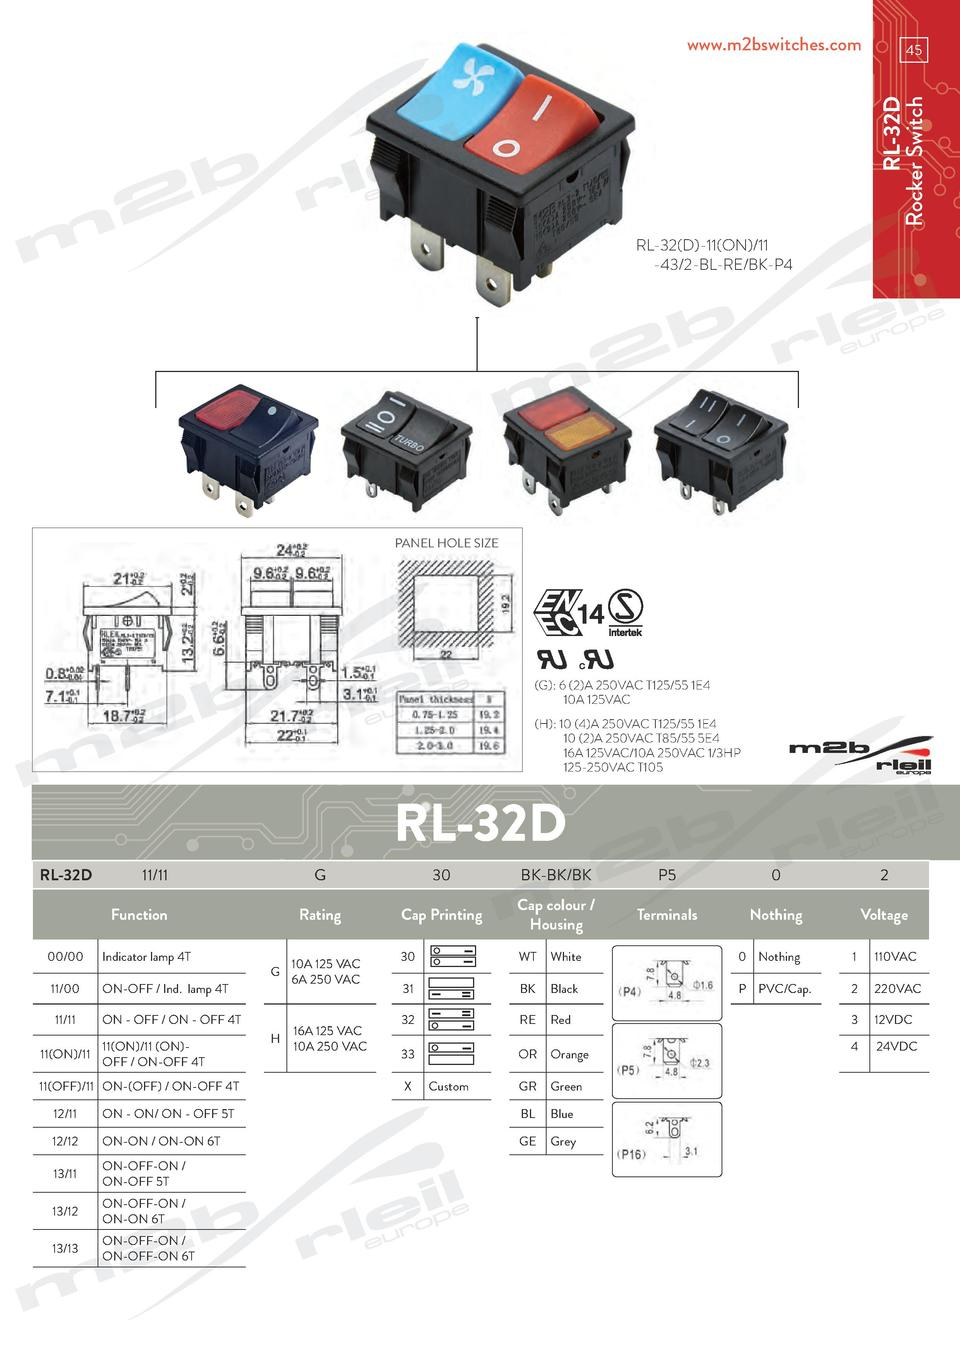 www.m2bswitches.com  RL-32D Rocker Switch  45  RL-32 D -11 ON  11 -43 2-BL-RE BK-P4  PANEL HOLE SIZE   G   6  2 A 250VAC T...